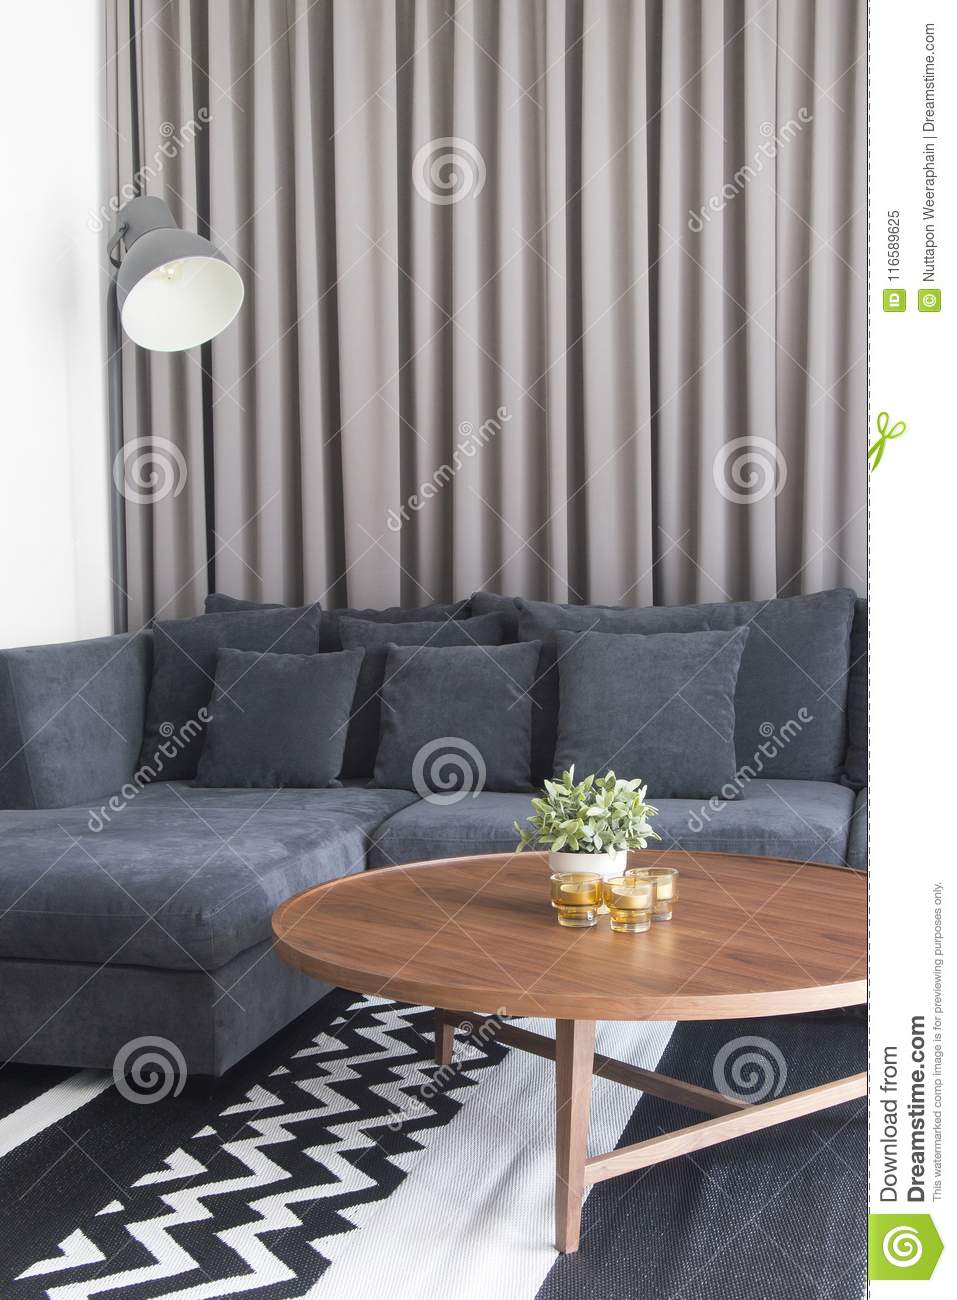 Brilliant Cozy Living Room With Navy Blue Satin Sofa And Candles On Machost Co Dining Chair Design Ideas Machostcouk